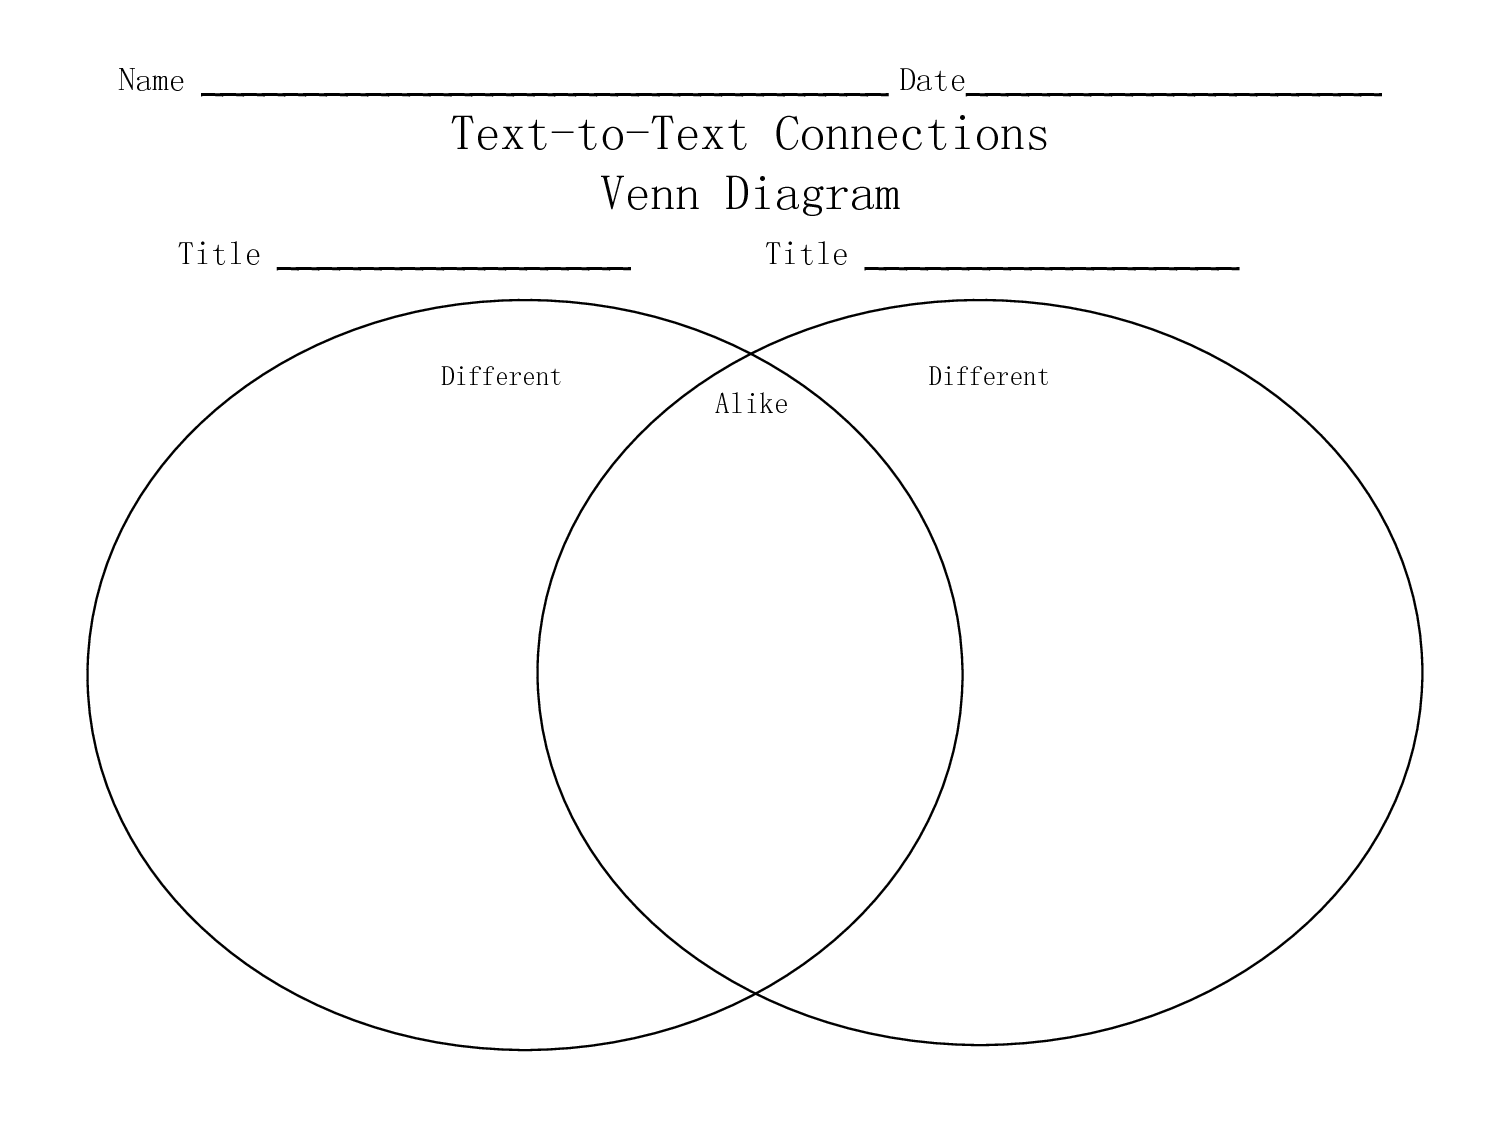 Text to text connections worksheets name date text to text teaching ideas text to text connections worksheets name date text to text connections venn diagram ccuart Image collections